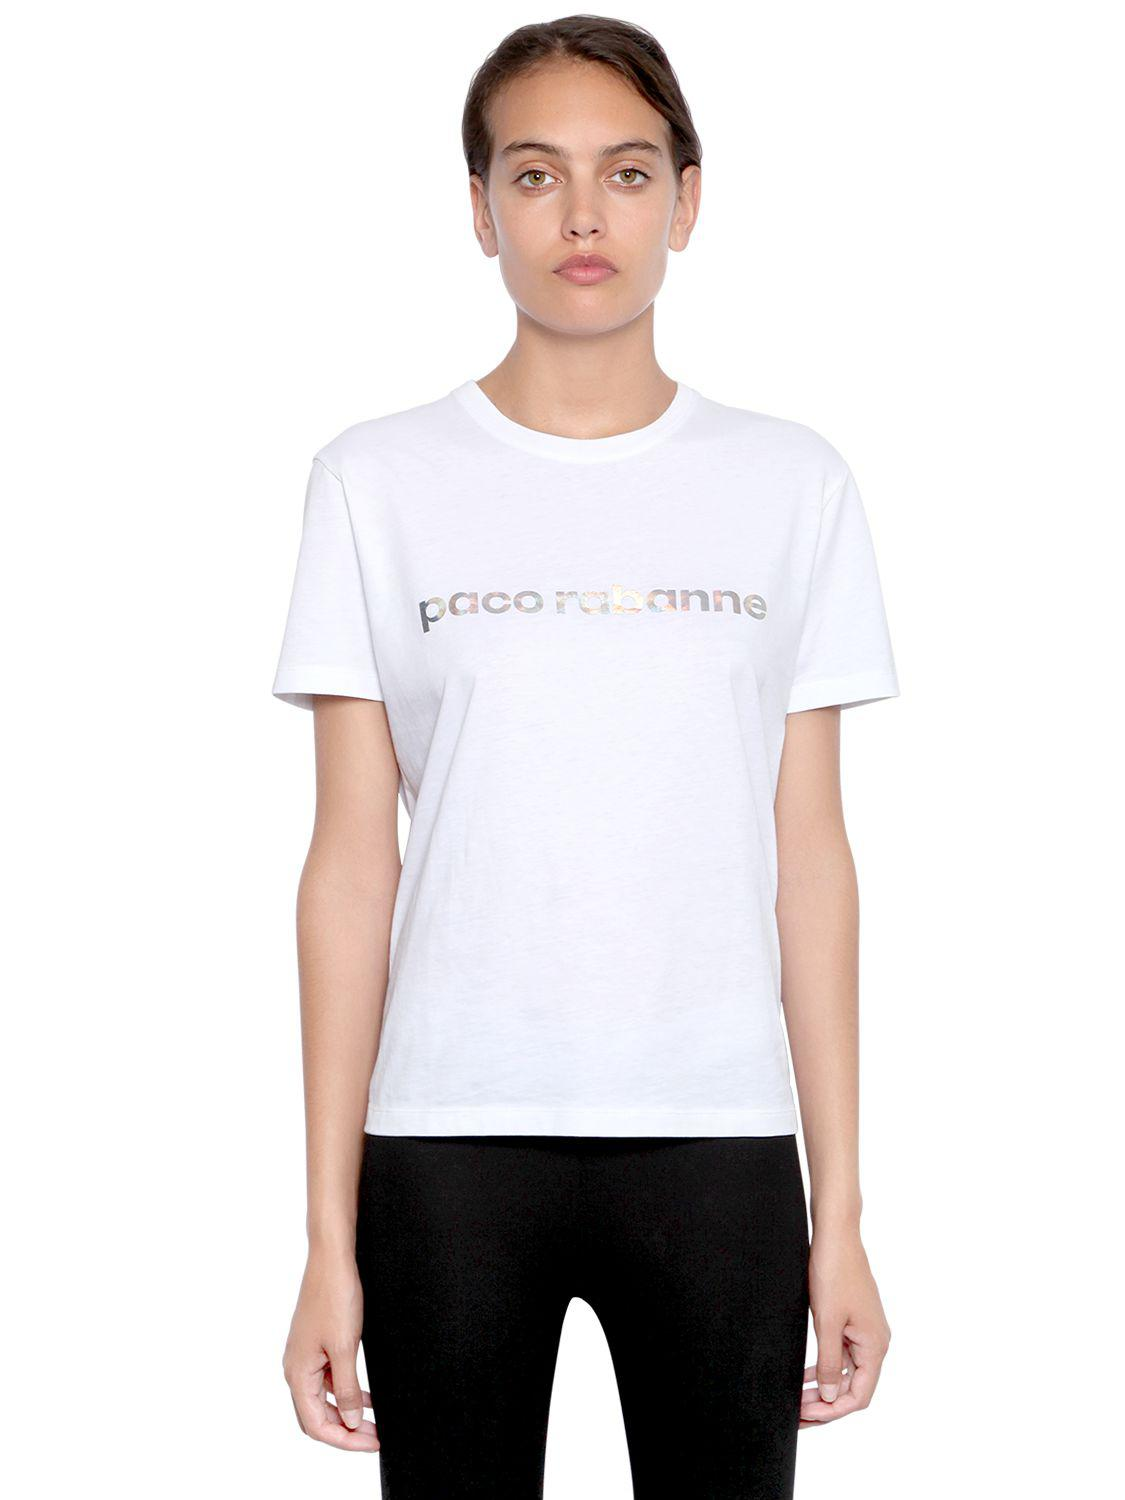 Paco rabanne Silver panel T-shirt Wsbty